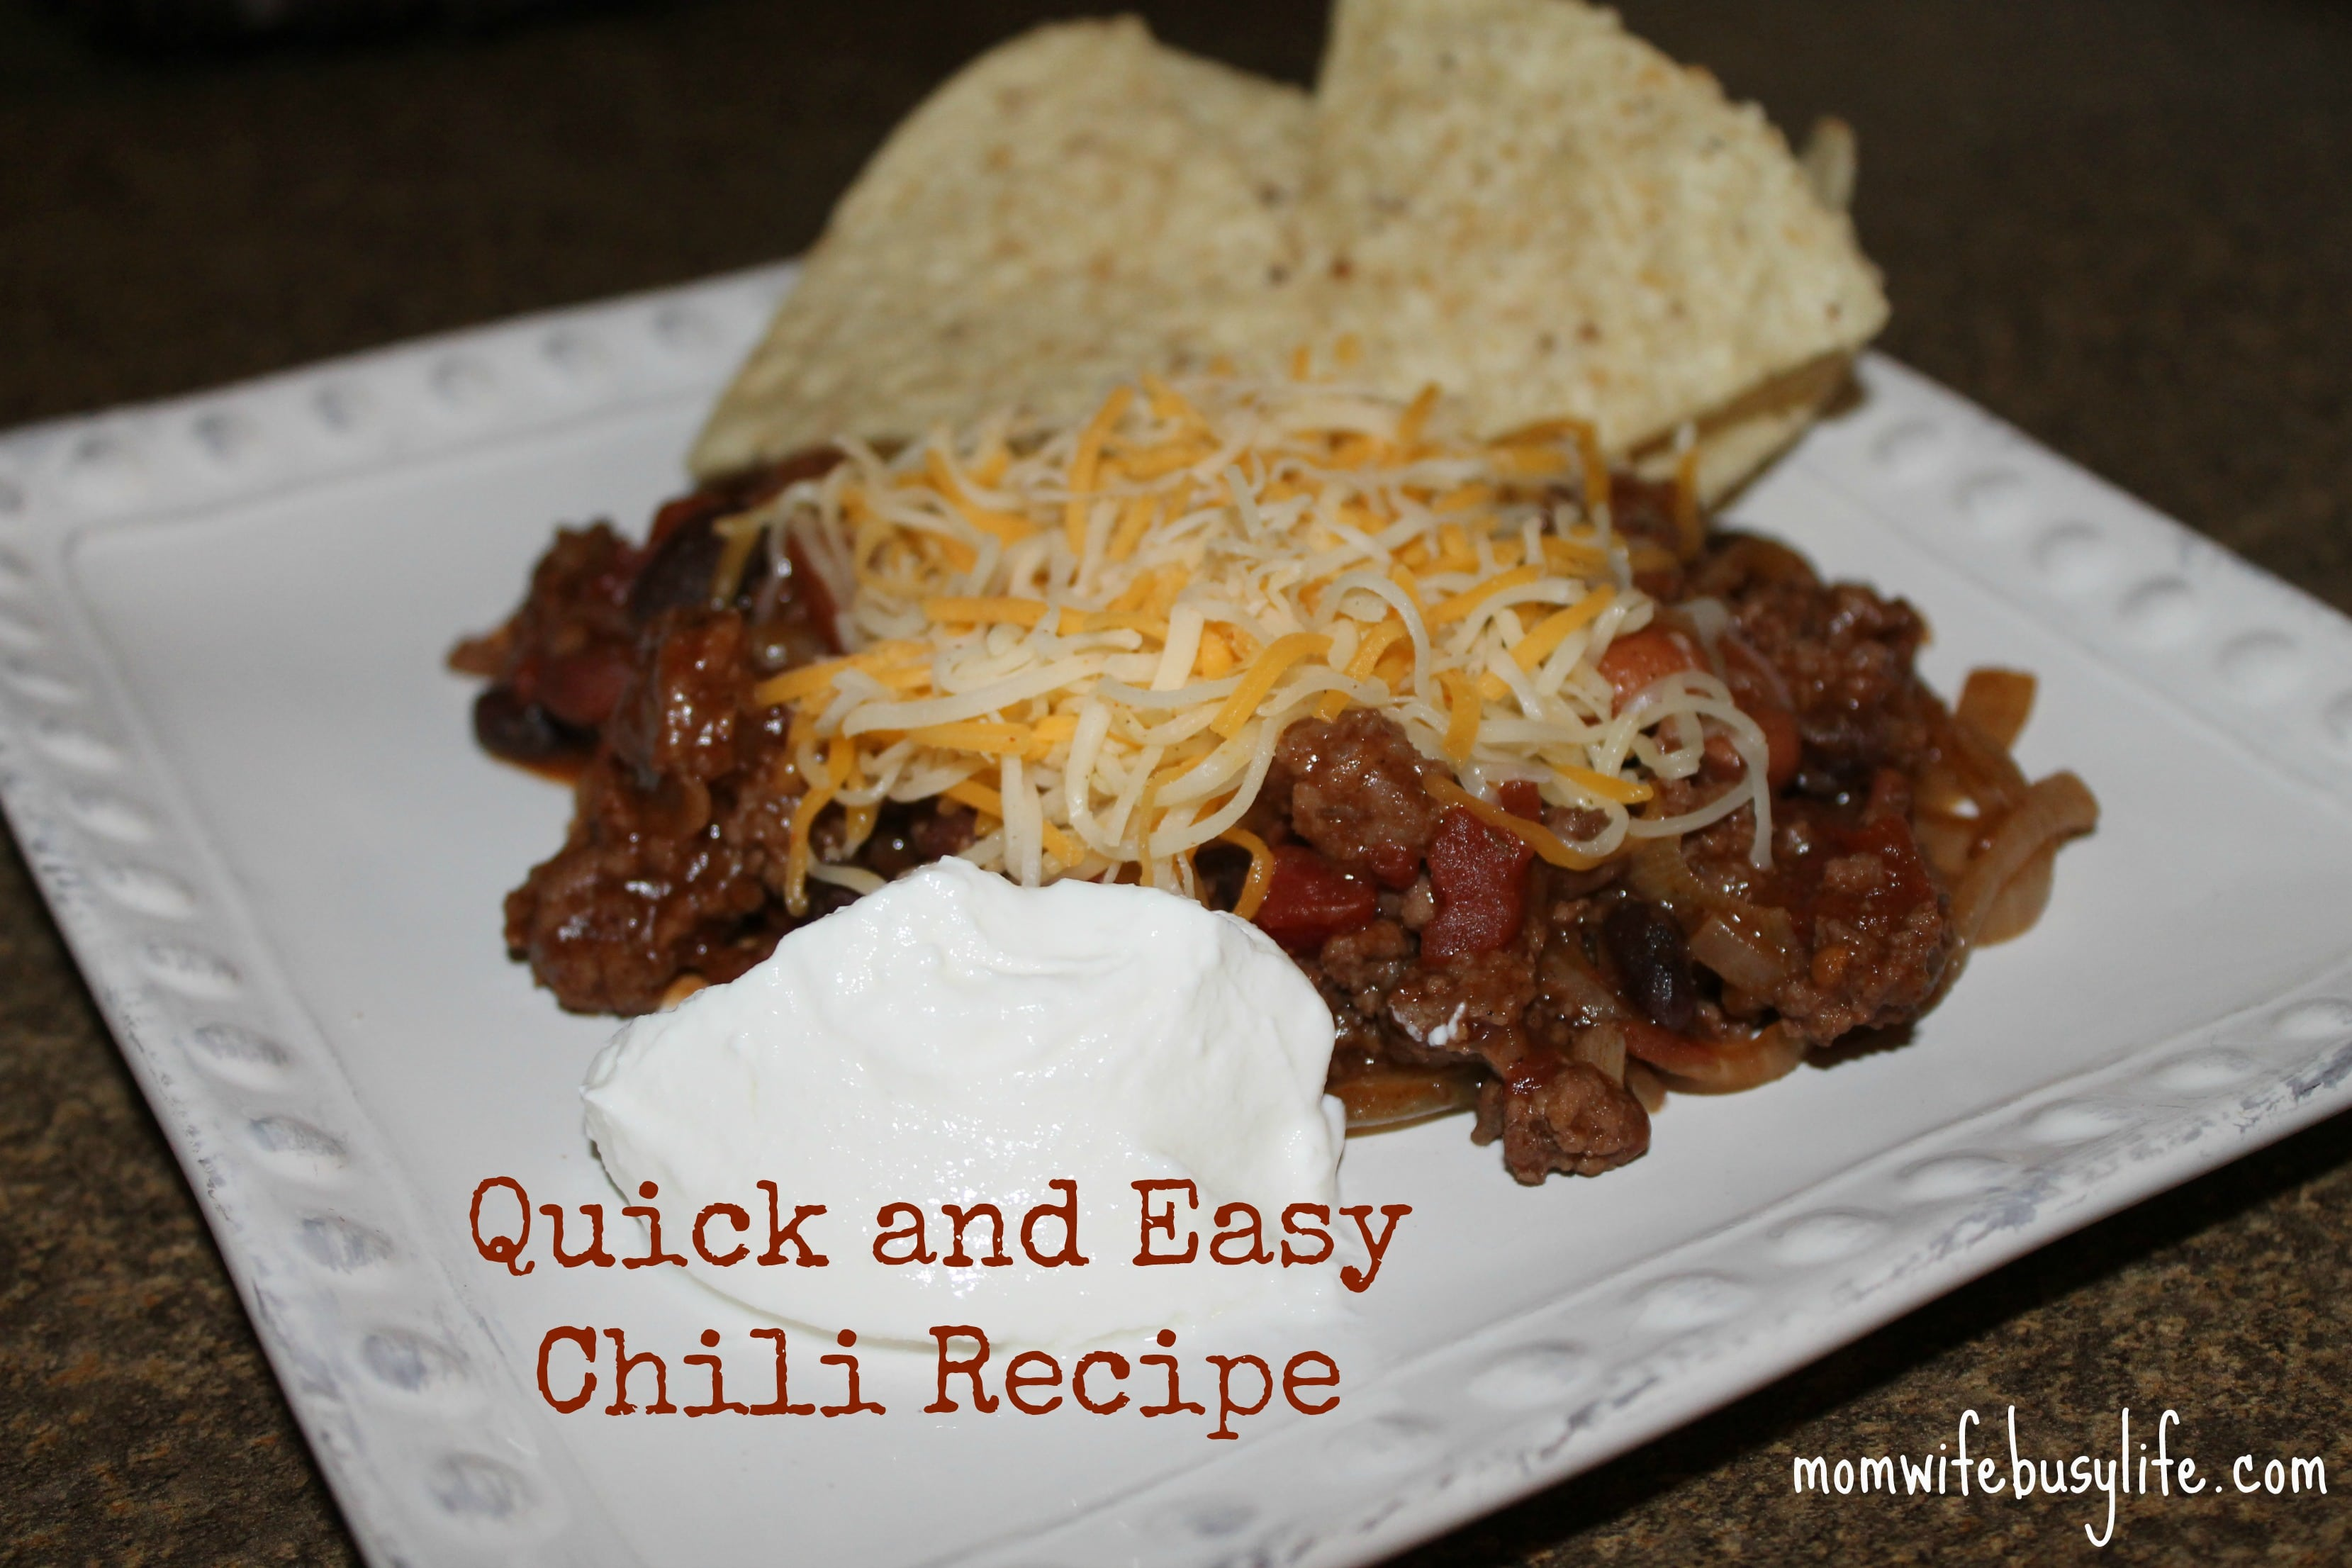 Quick and Easy Chili Recipe - Mom. Wife. Busy Life.